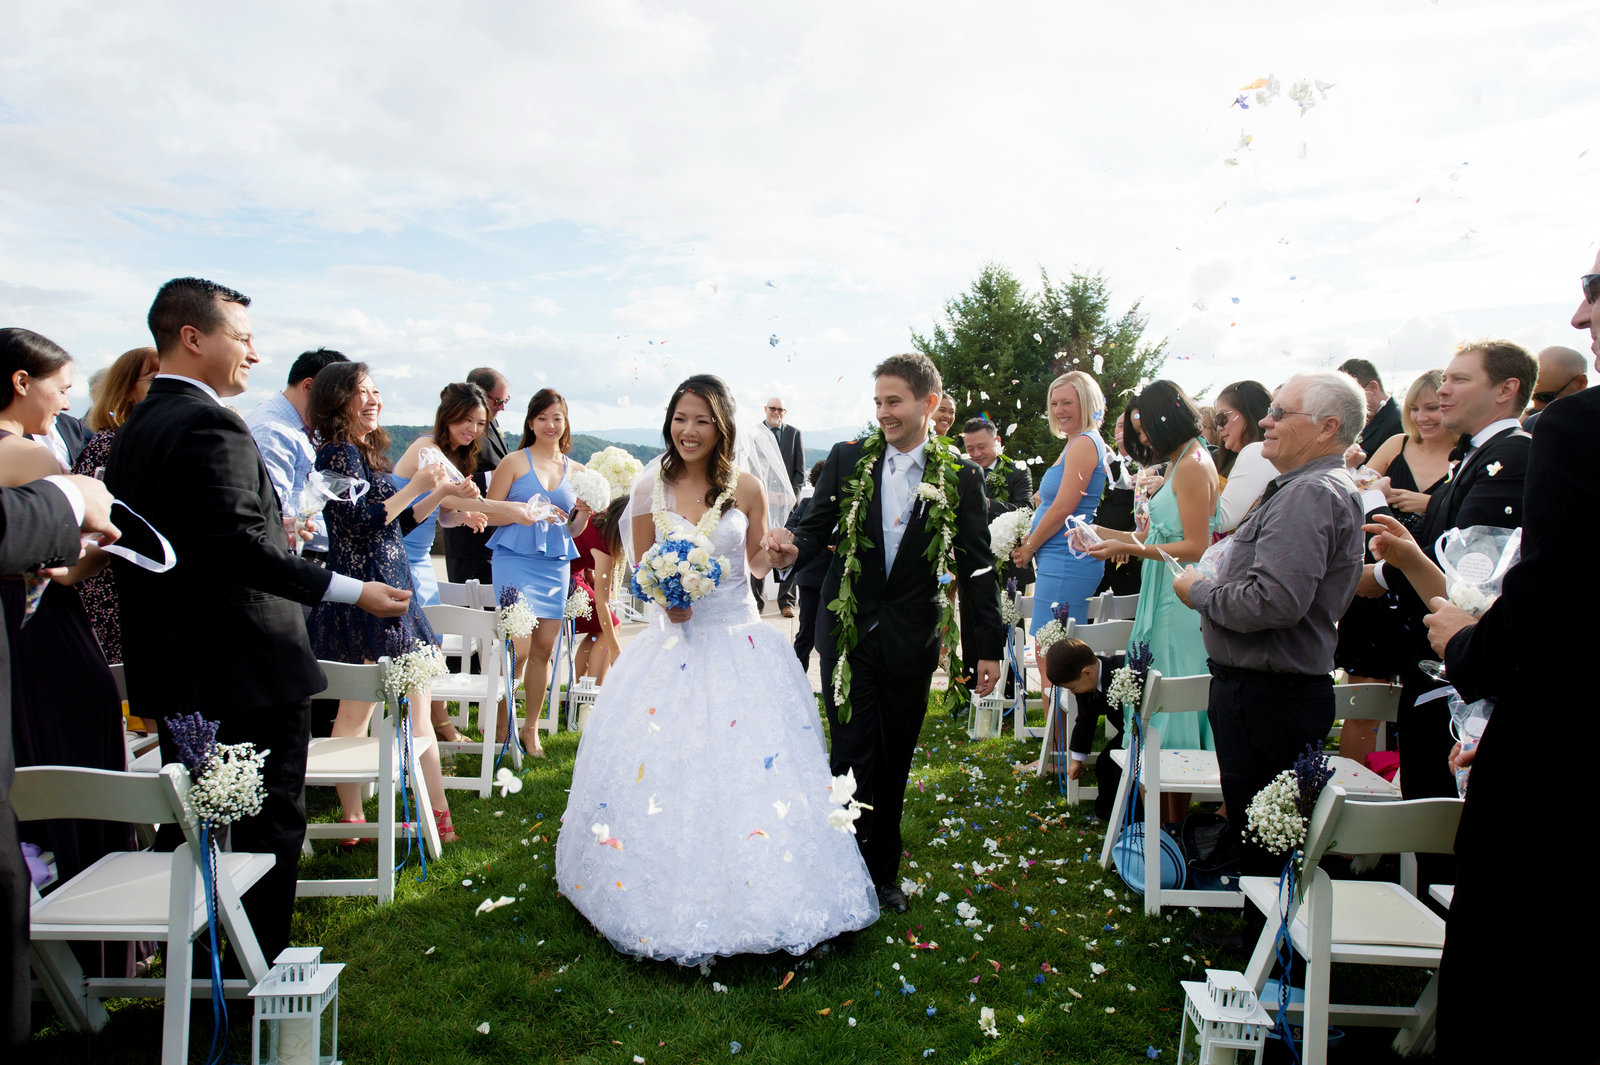 guests throw flowers at bride and groom as they walk down the aisle